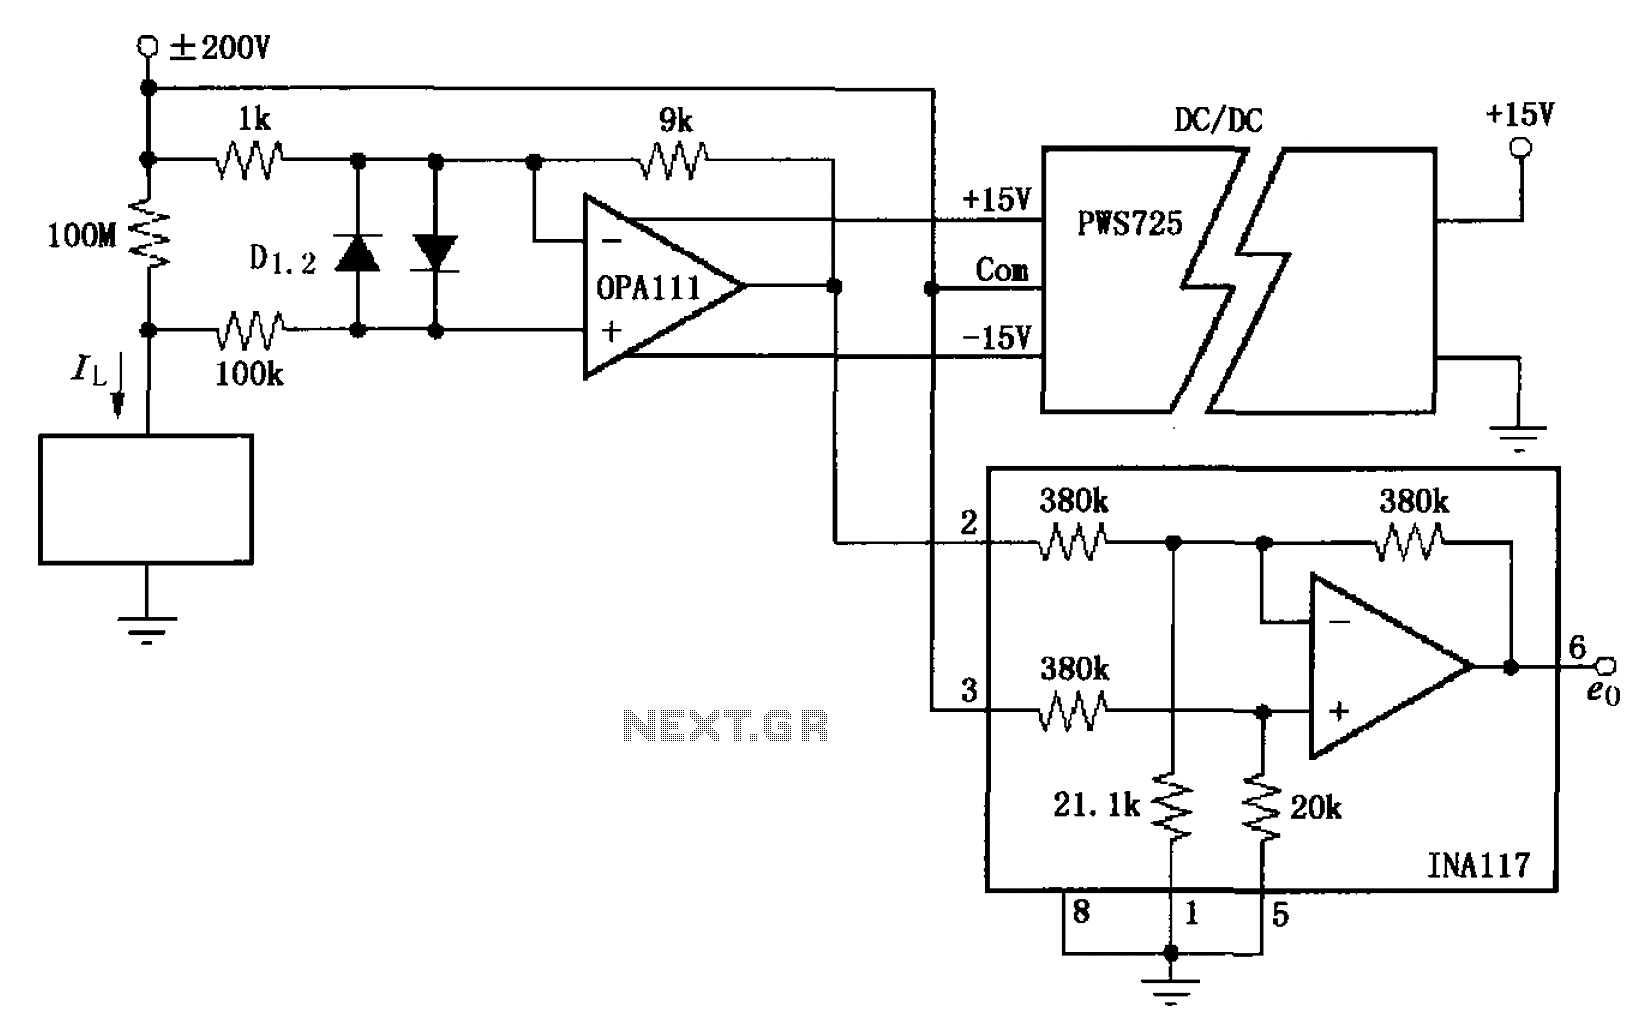 buffer leakage current measurement circuit diagram opa111 ina117 under sequencer circuits